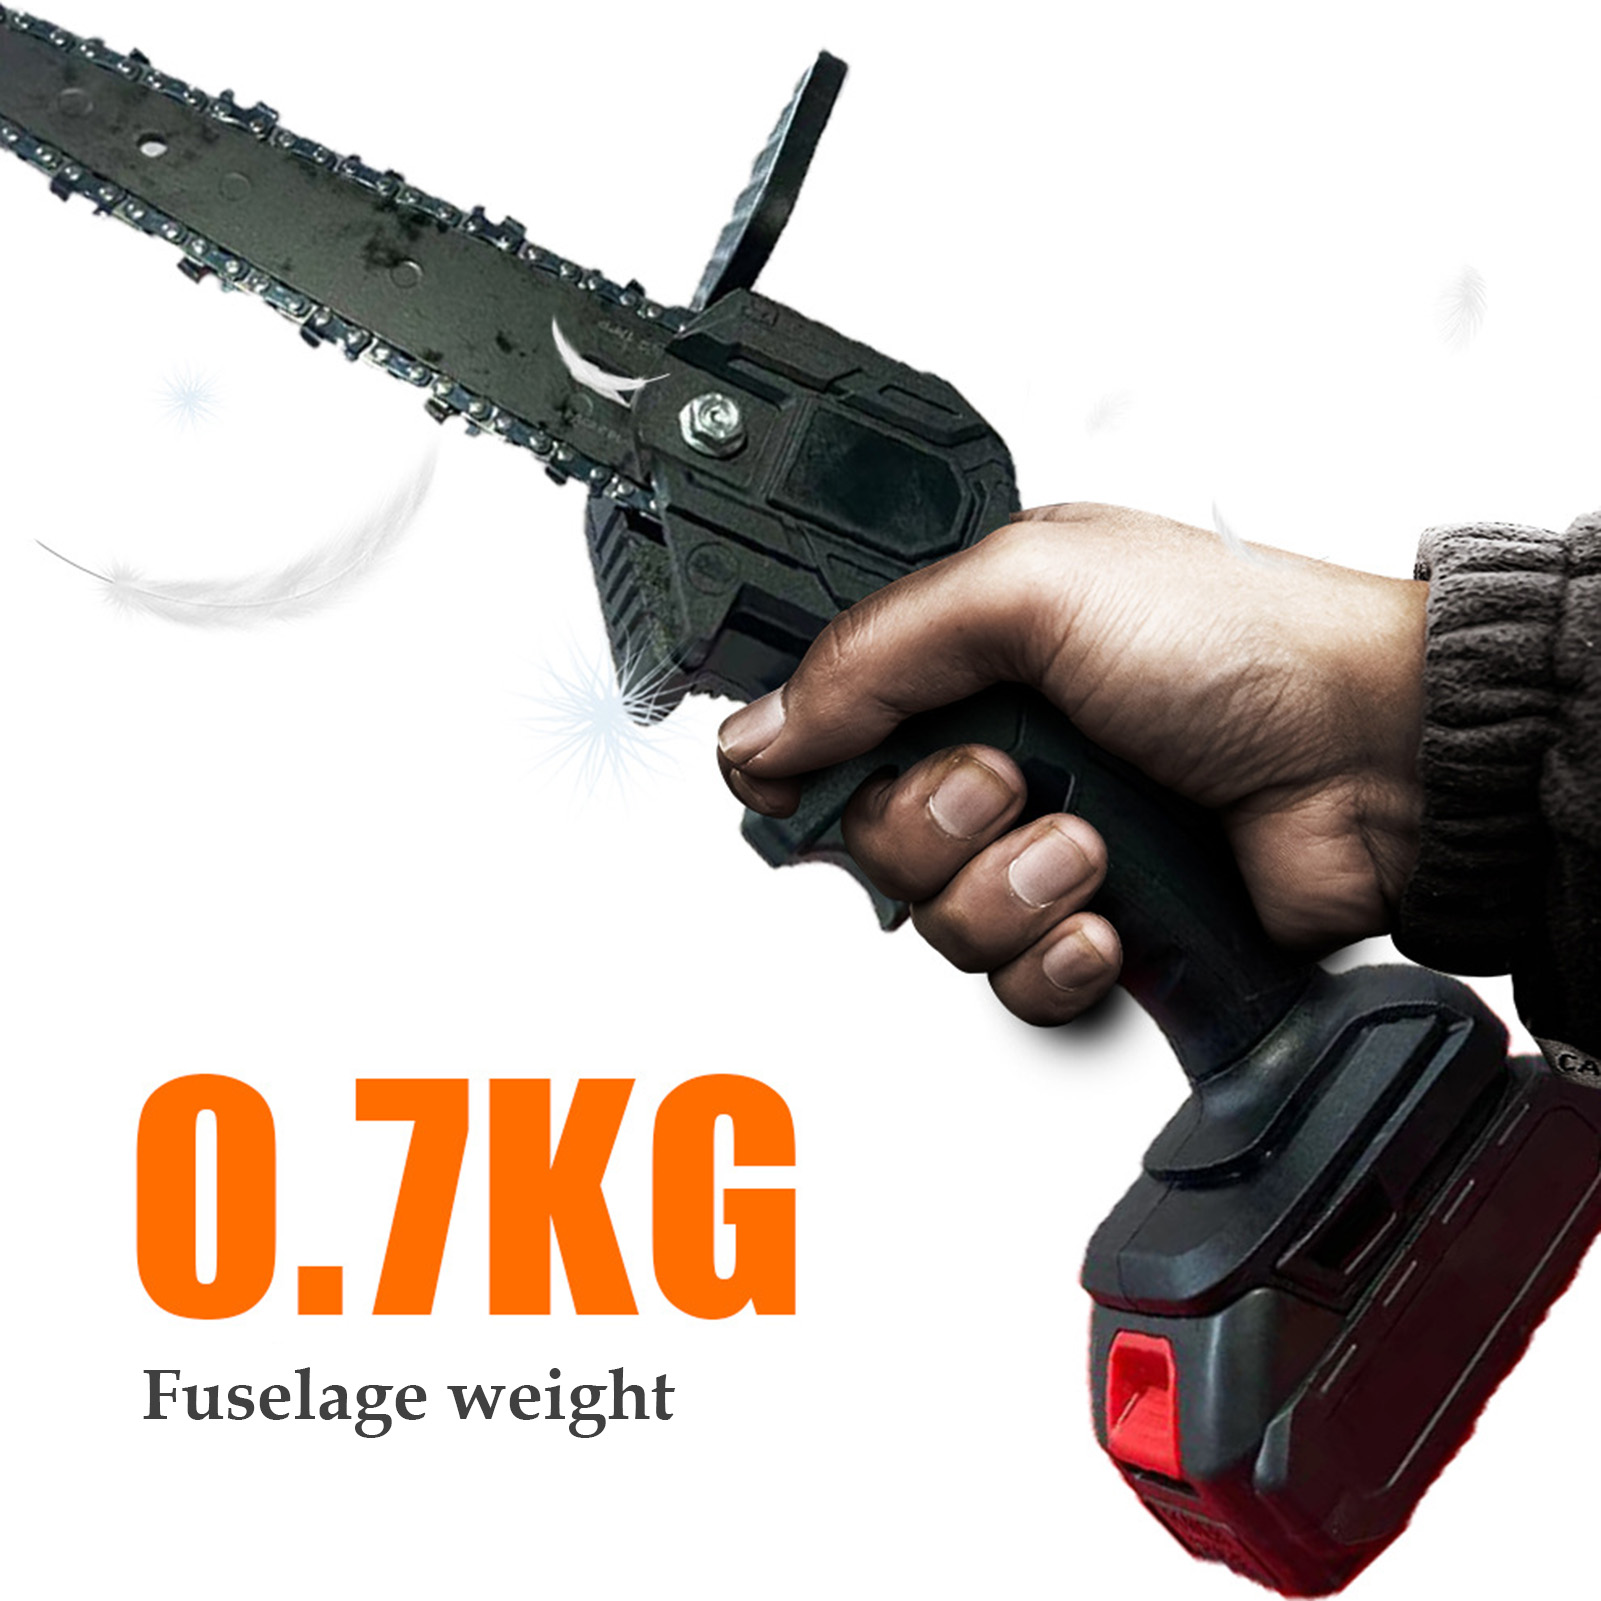 Tools : 550W Pruning Saw 6-Inch Handheld Cordless Electric Chainsaws Removable For Fruit Tree Garden Trimming With Lithium Battery One